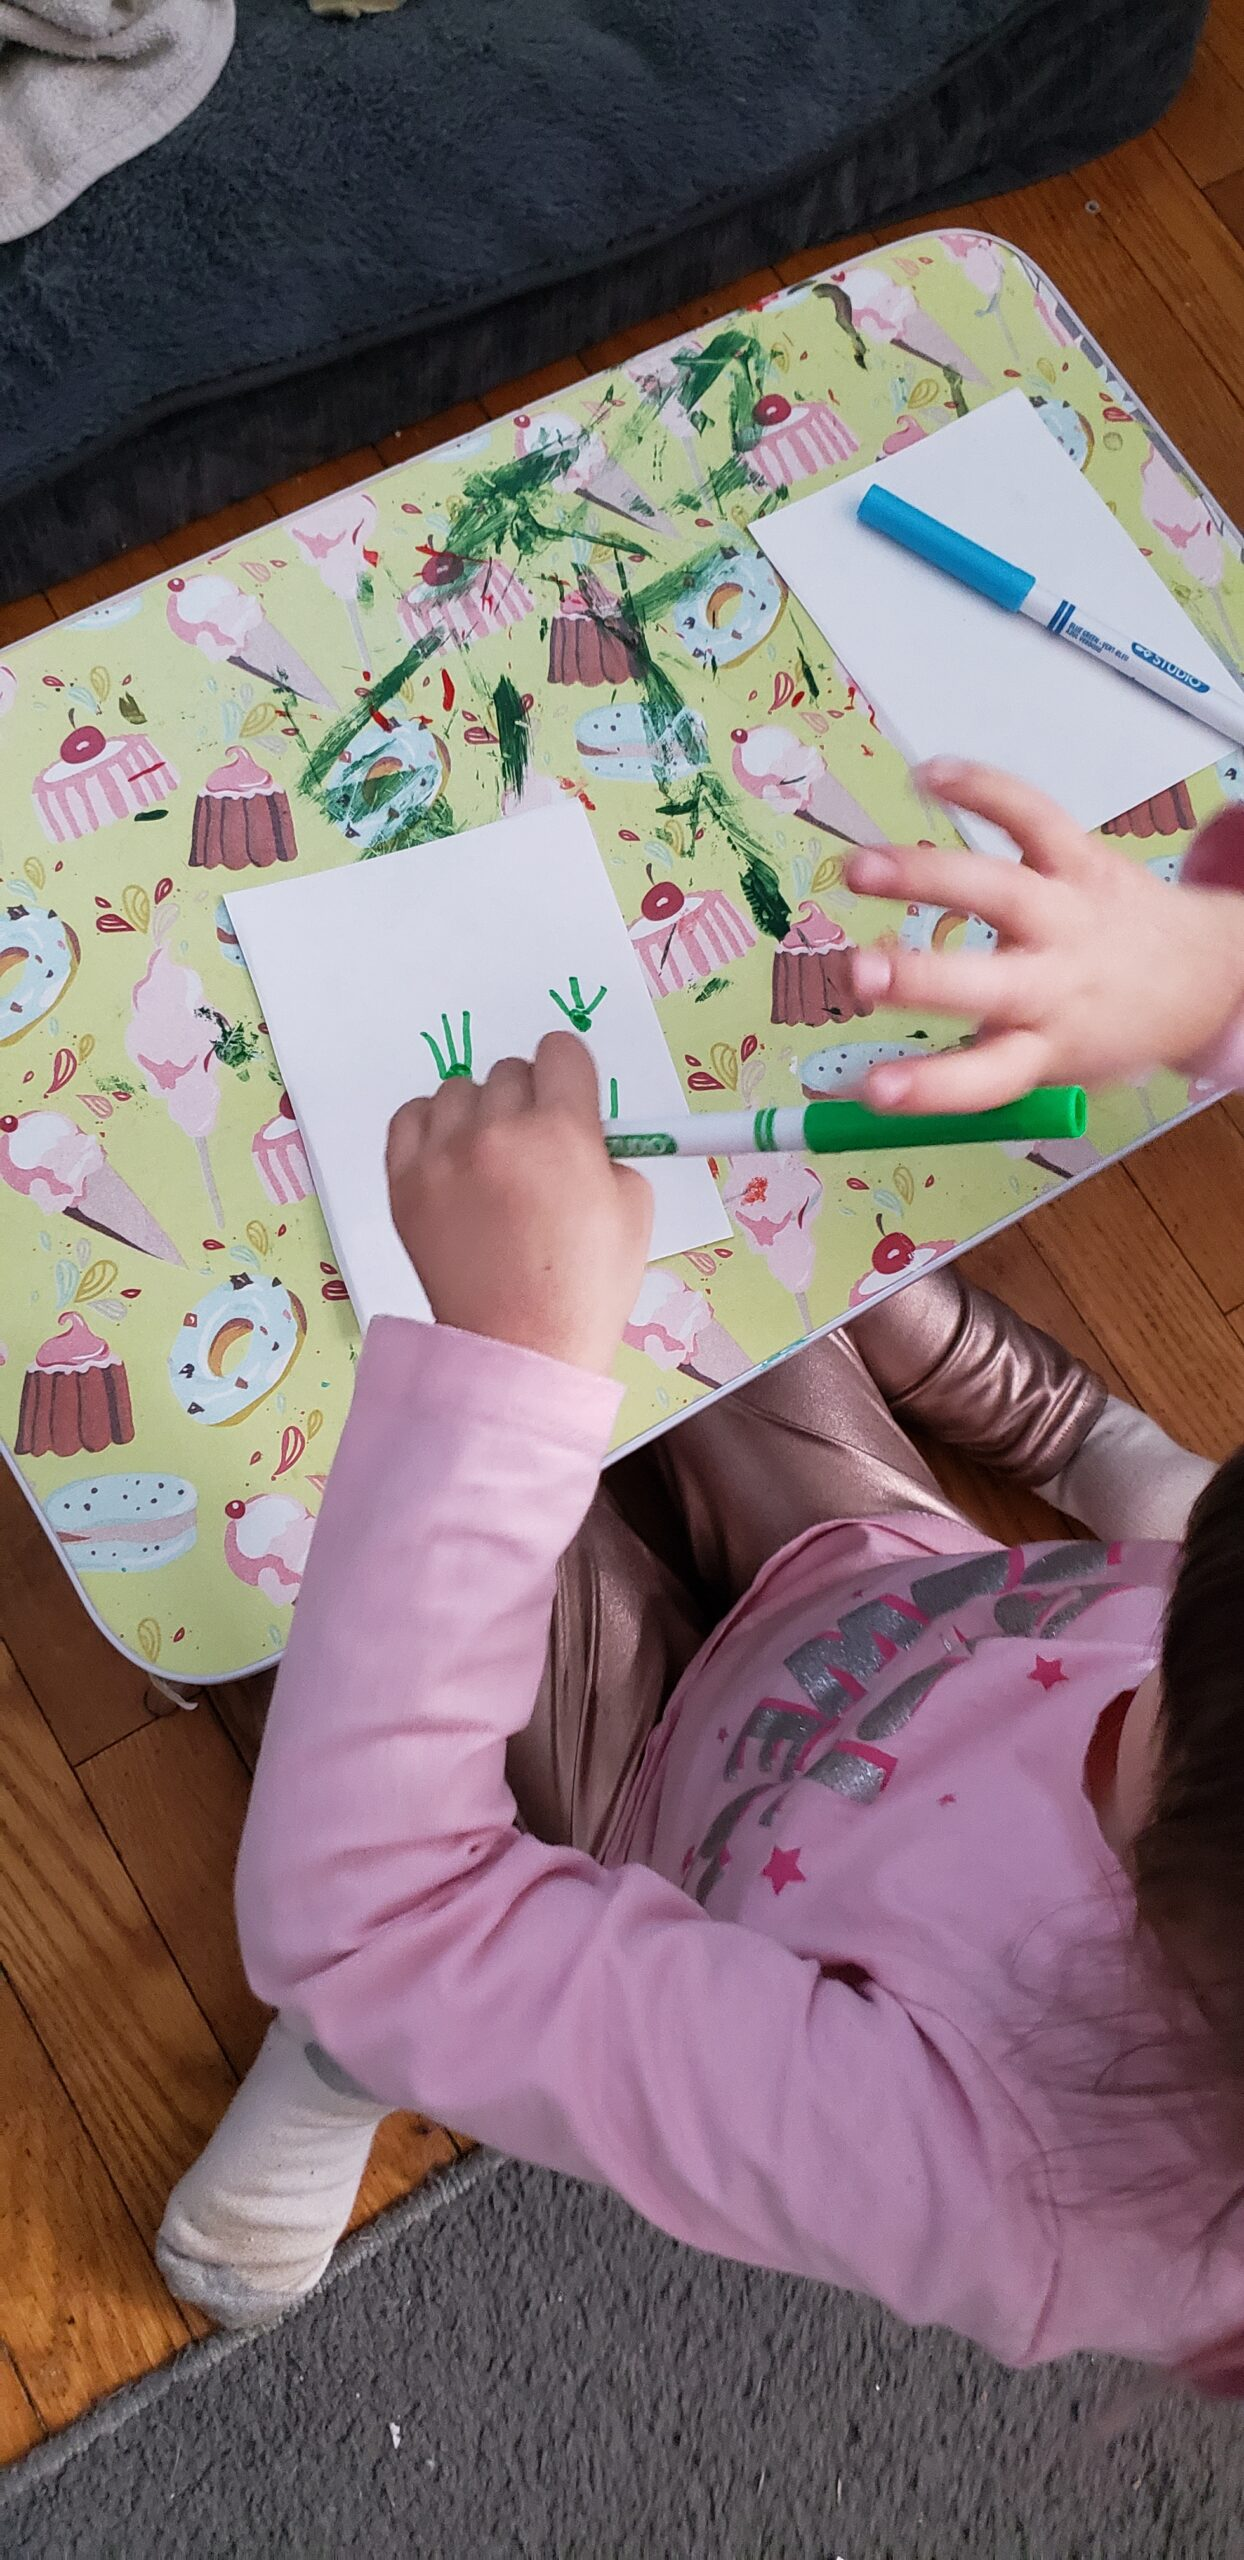 Helping Children Understand Their Emotions with Mood Cards